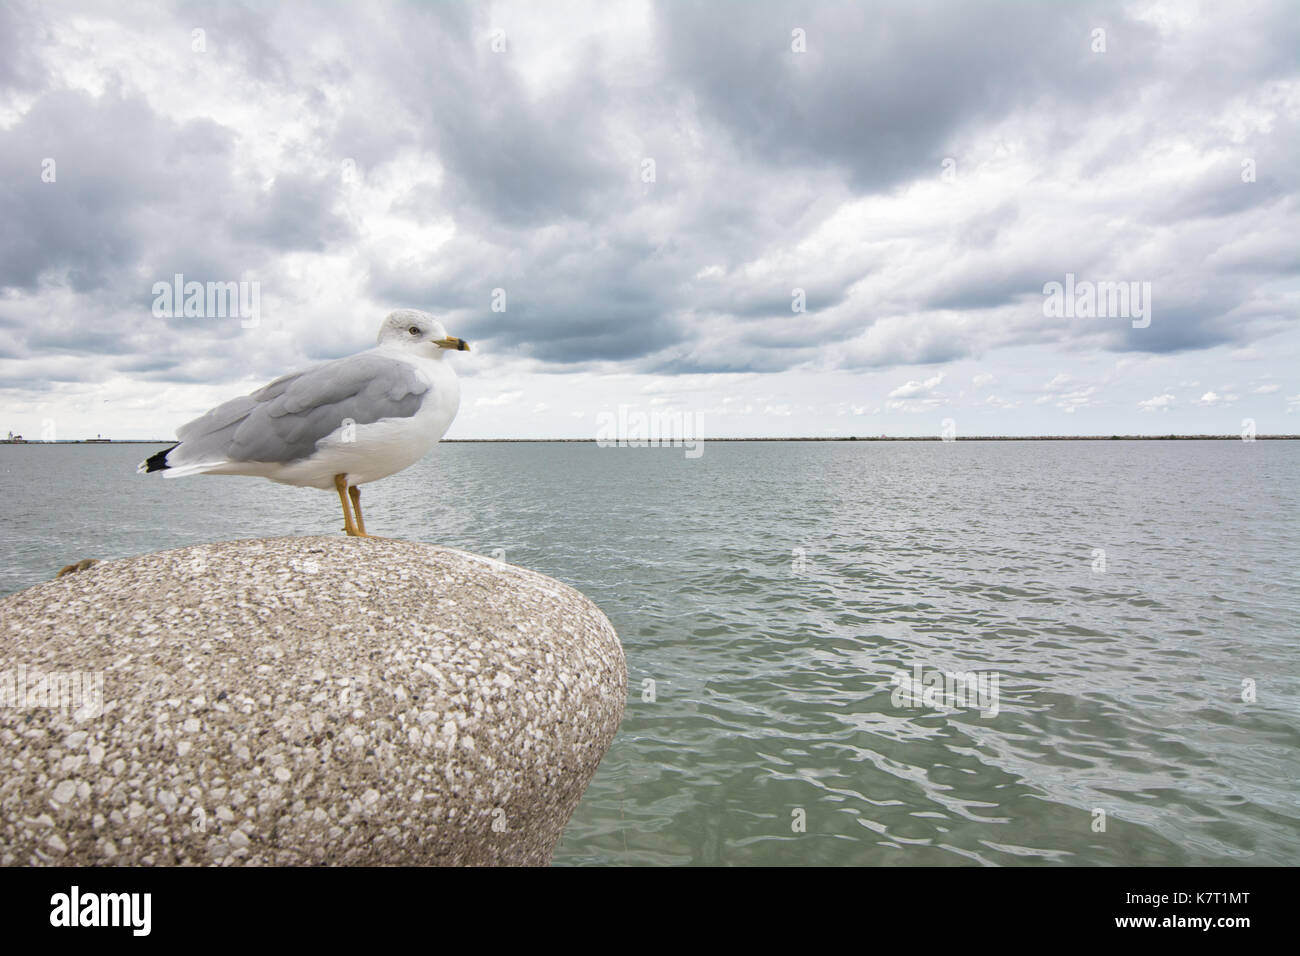 A lone seagull sits on a stone pillar on a cloudy, overcast day along lake Erie in Cleveland, Ohio. - Stock Image